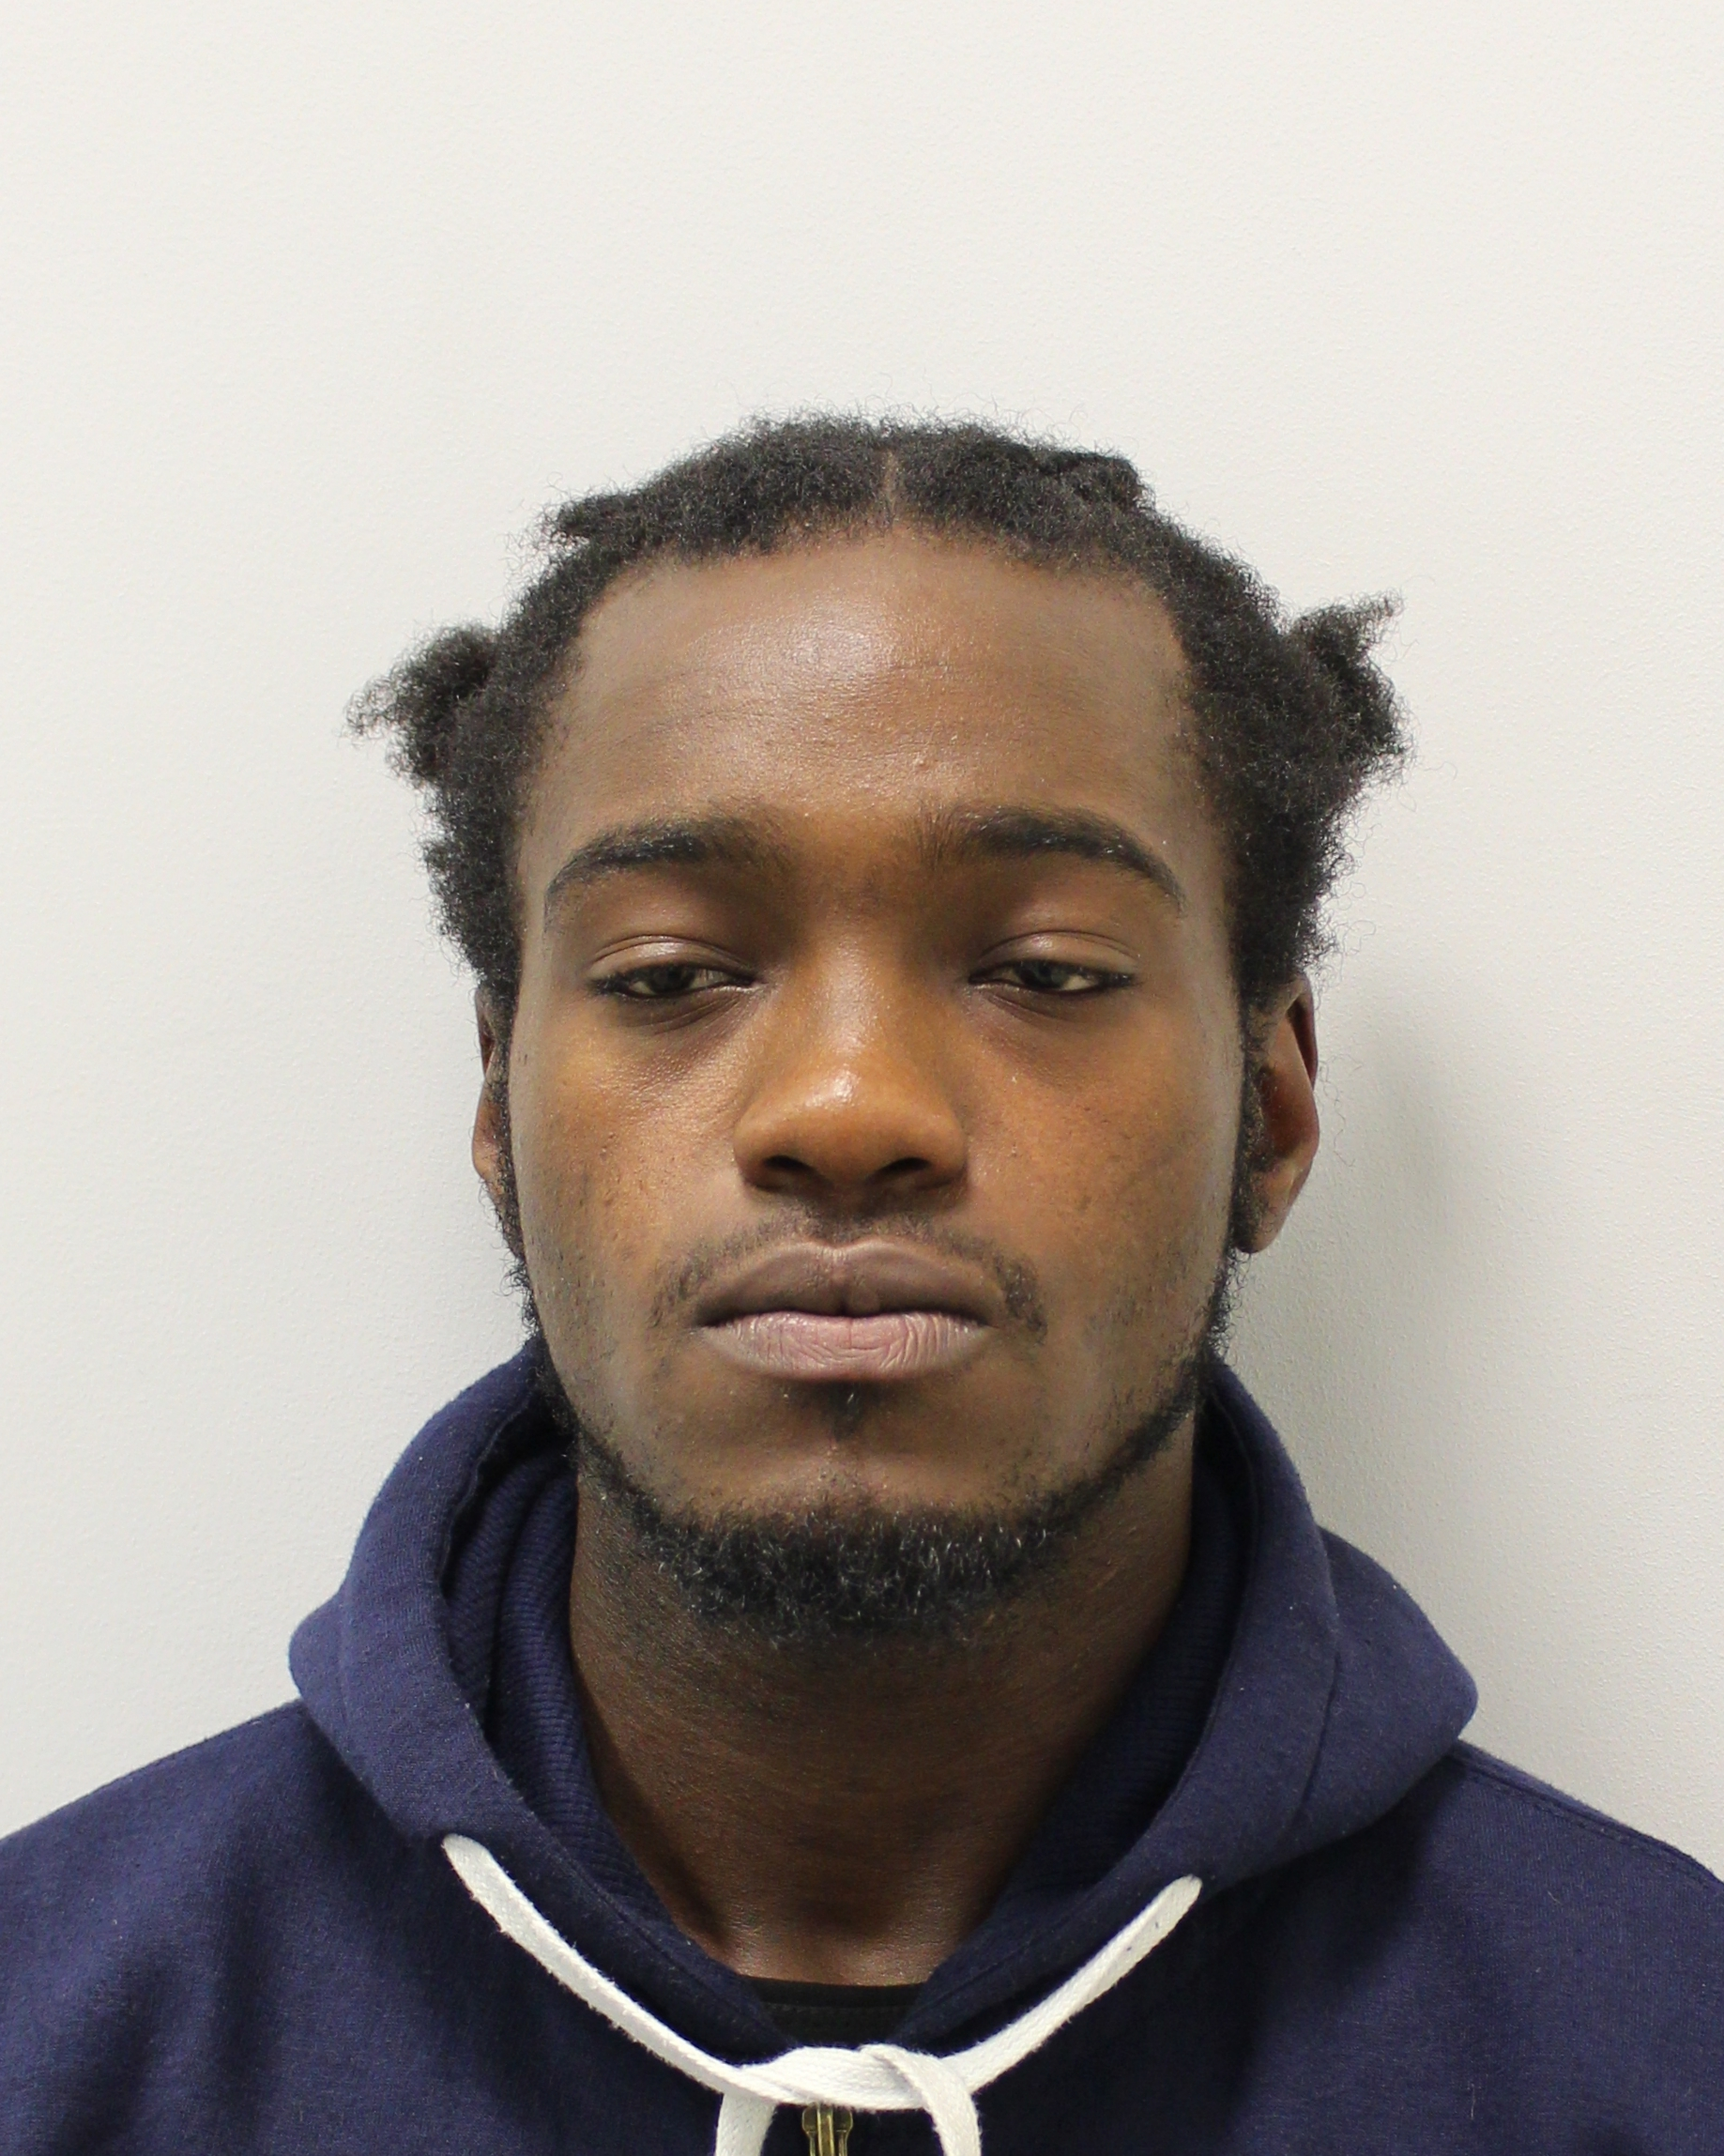 Blake Nkwelle, 22, from Barnet, wanted on warrant by Willesden Magistrates Court for breach of community order